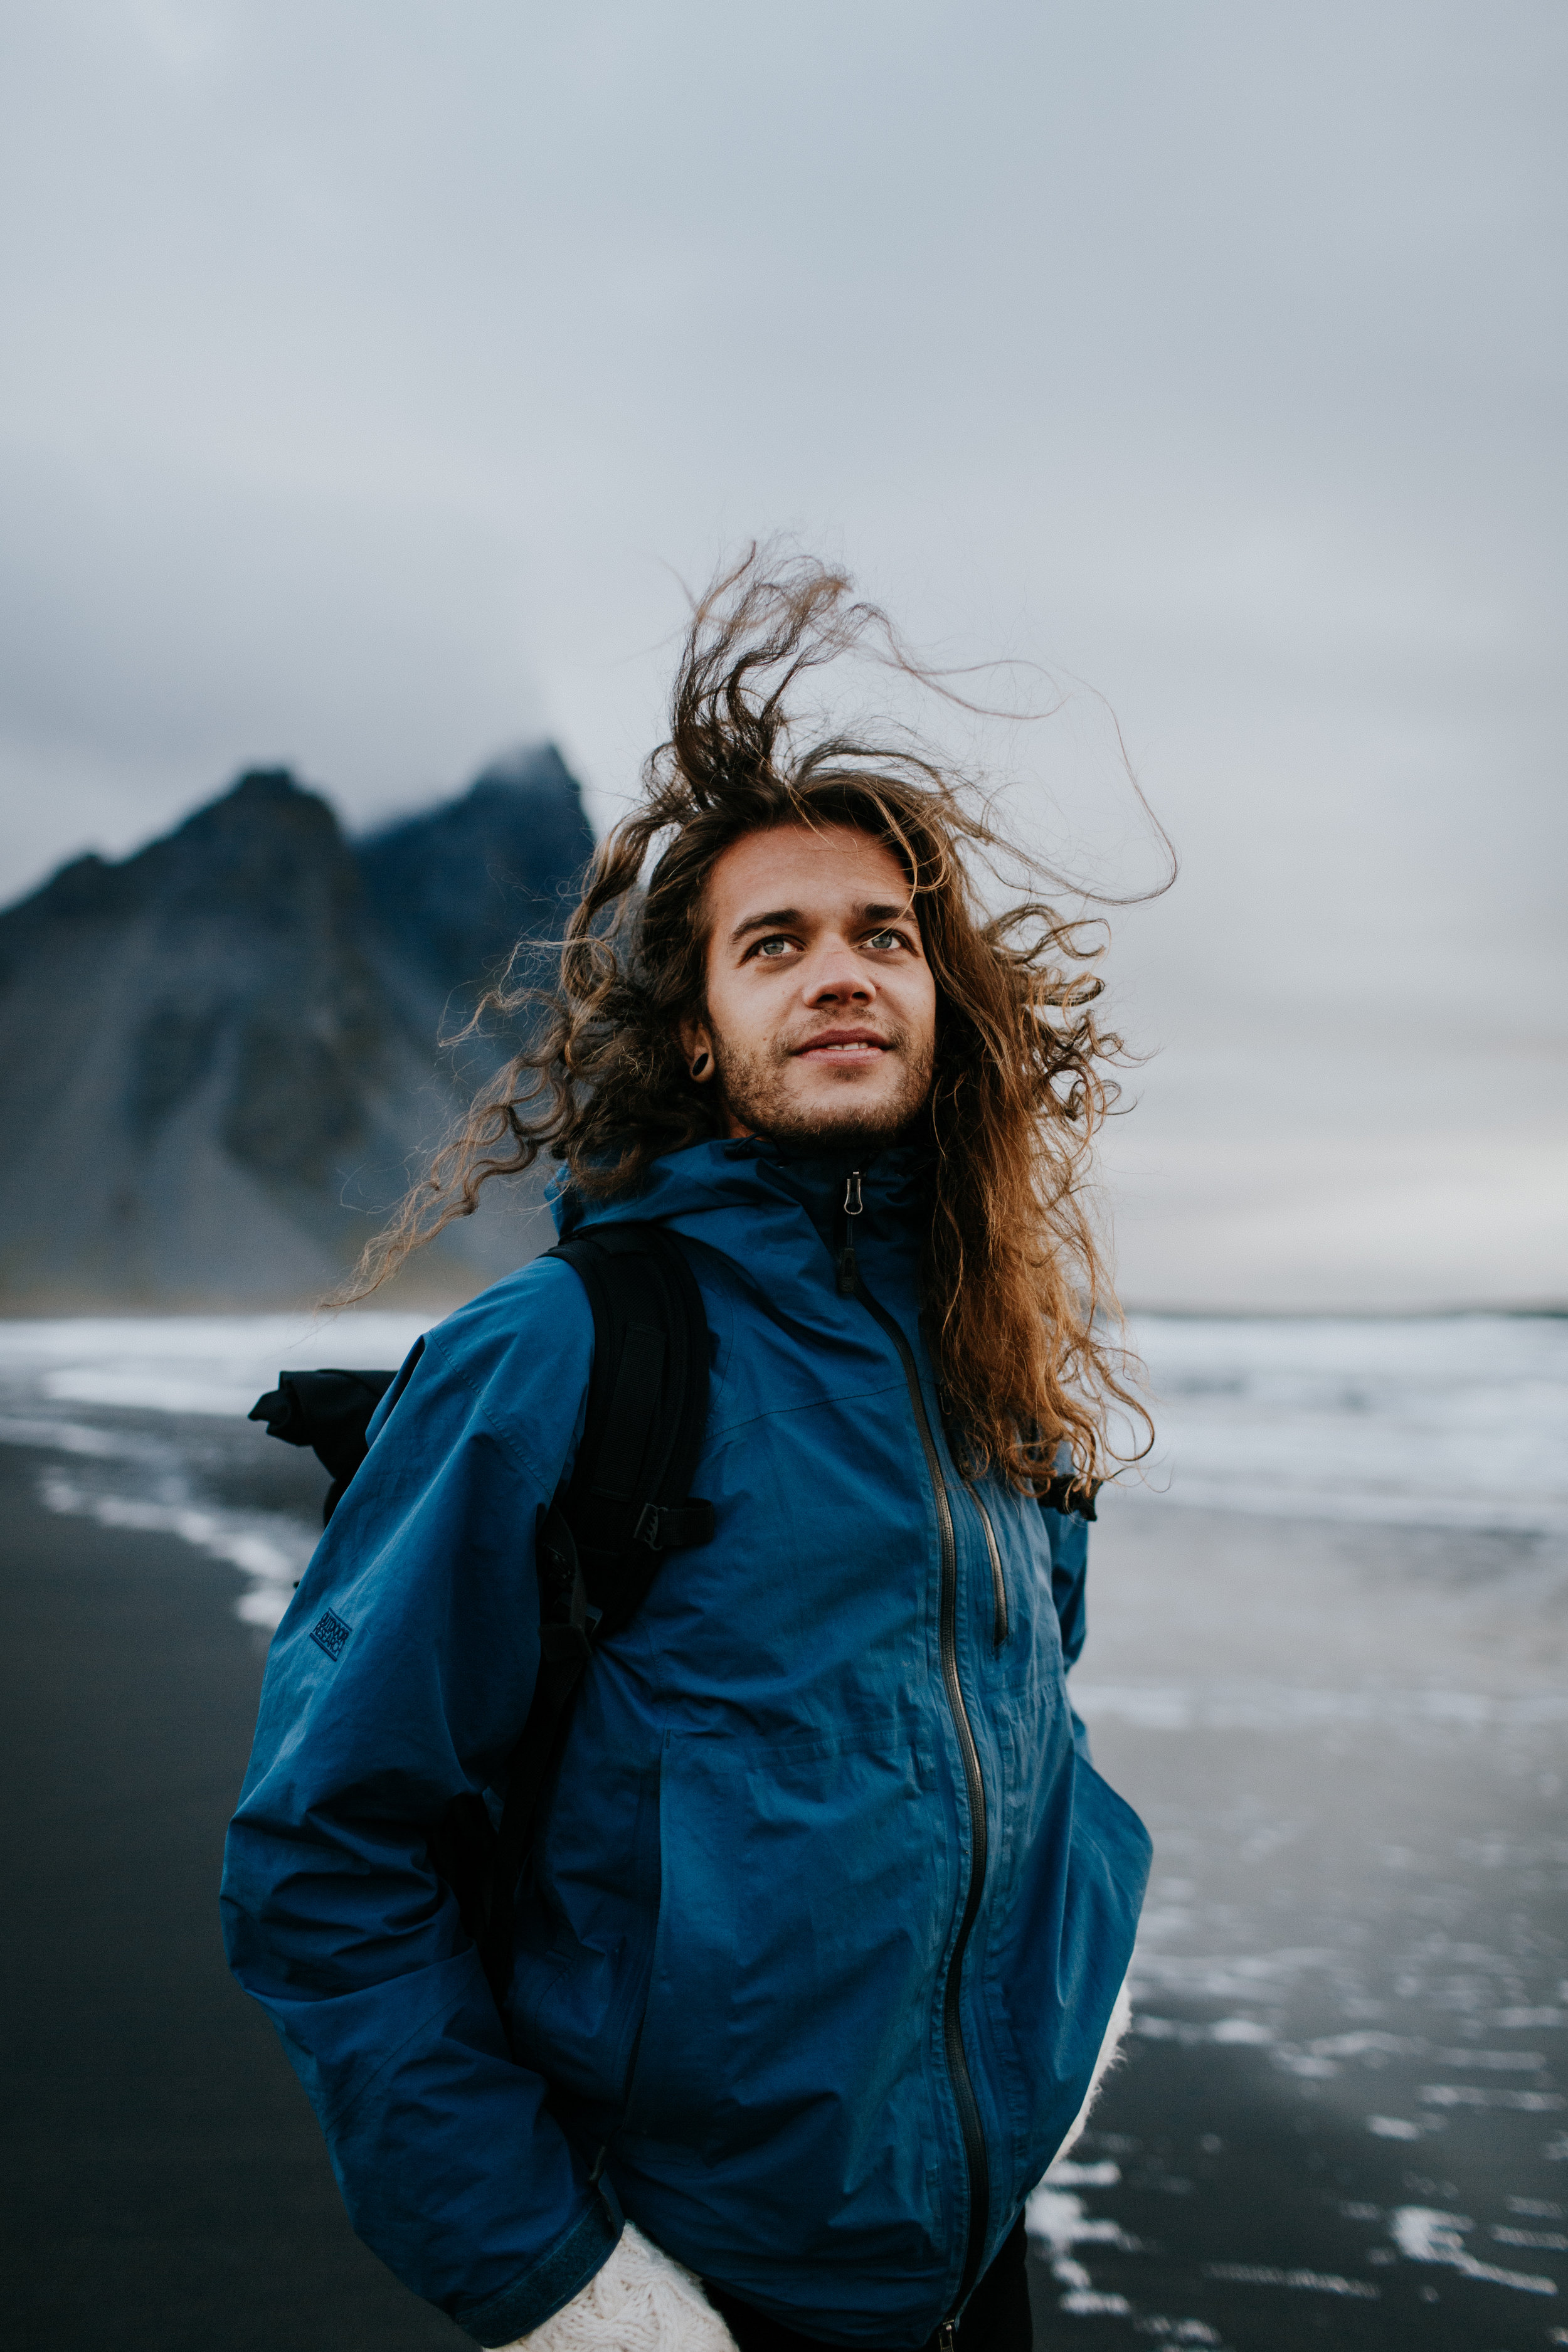 Jonathan Couch - -Unicycles-World of Warcraft-Lived in the wilderness for 5 years-Most likely to win the lottery and lose the ticket-Biggest dream is to retire in Bend, Oregon to work at the last Blockbuster